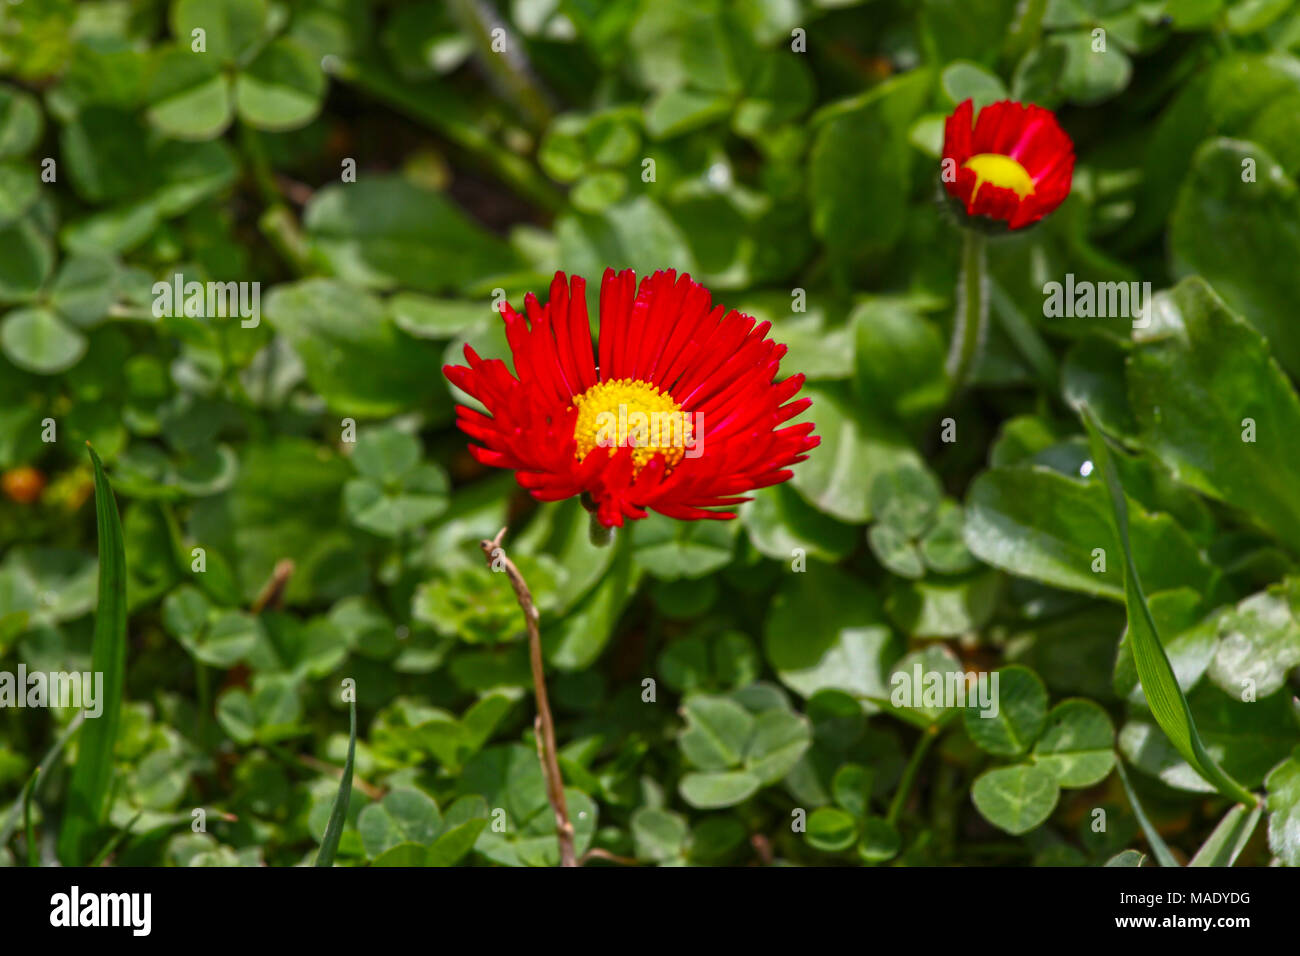 Daisy Red Daisy Flowers In Spring On A Meadow In Green Grass In